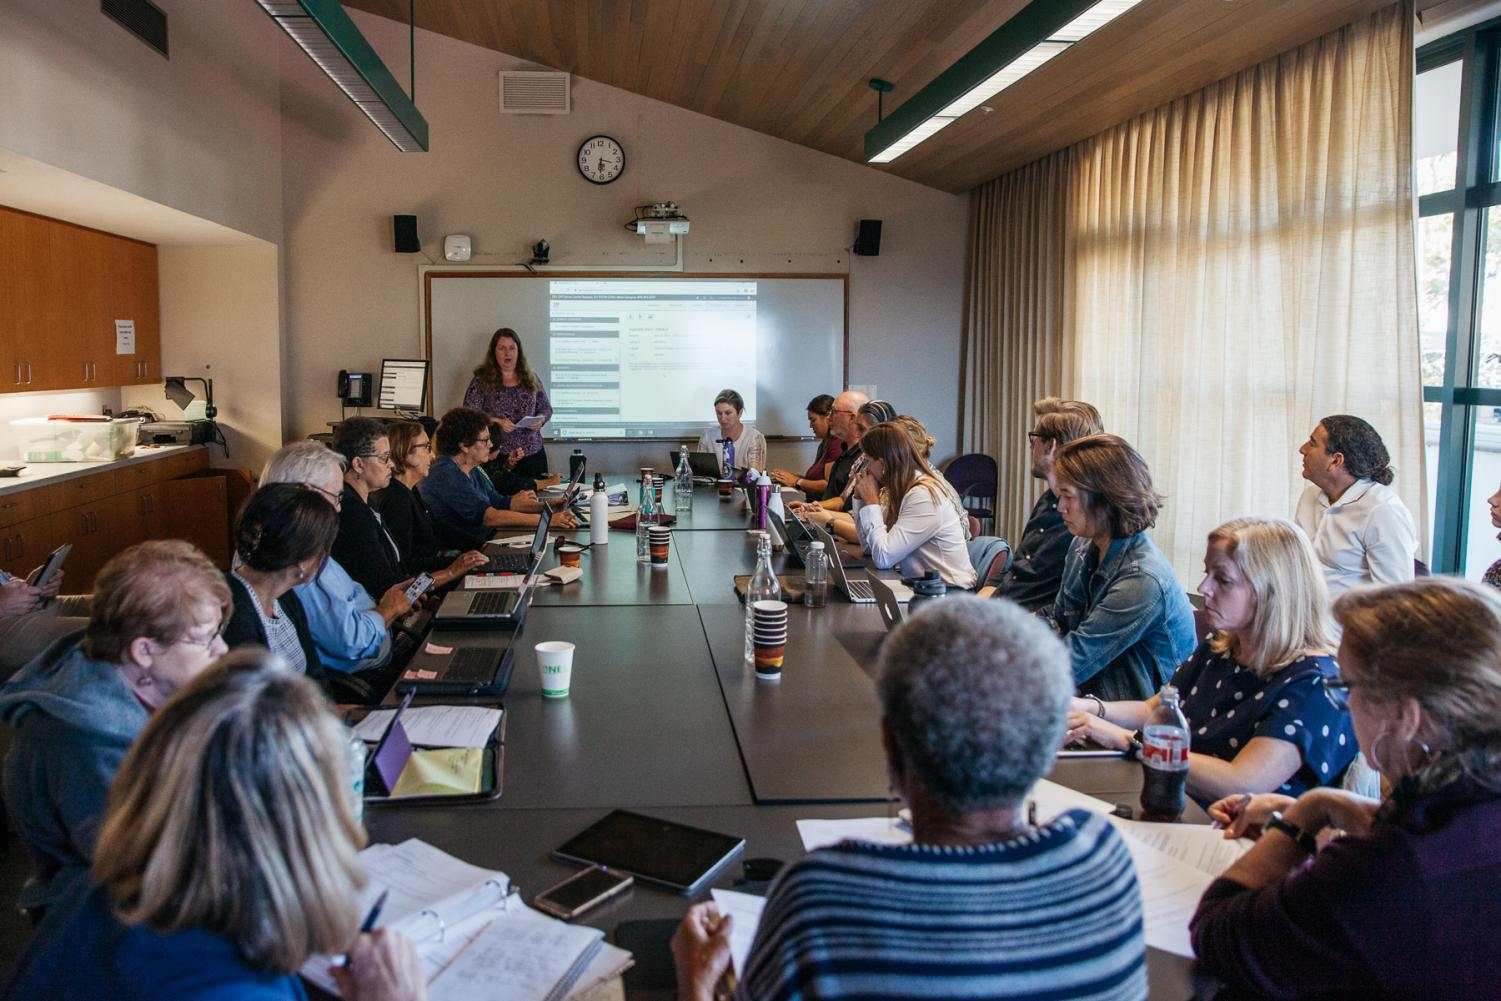 CPC meeting on Tuesday Oct. 15, 2019, in the Business Communication Center at City College in Santa Barbara, Calif.